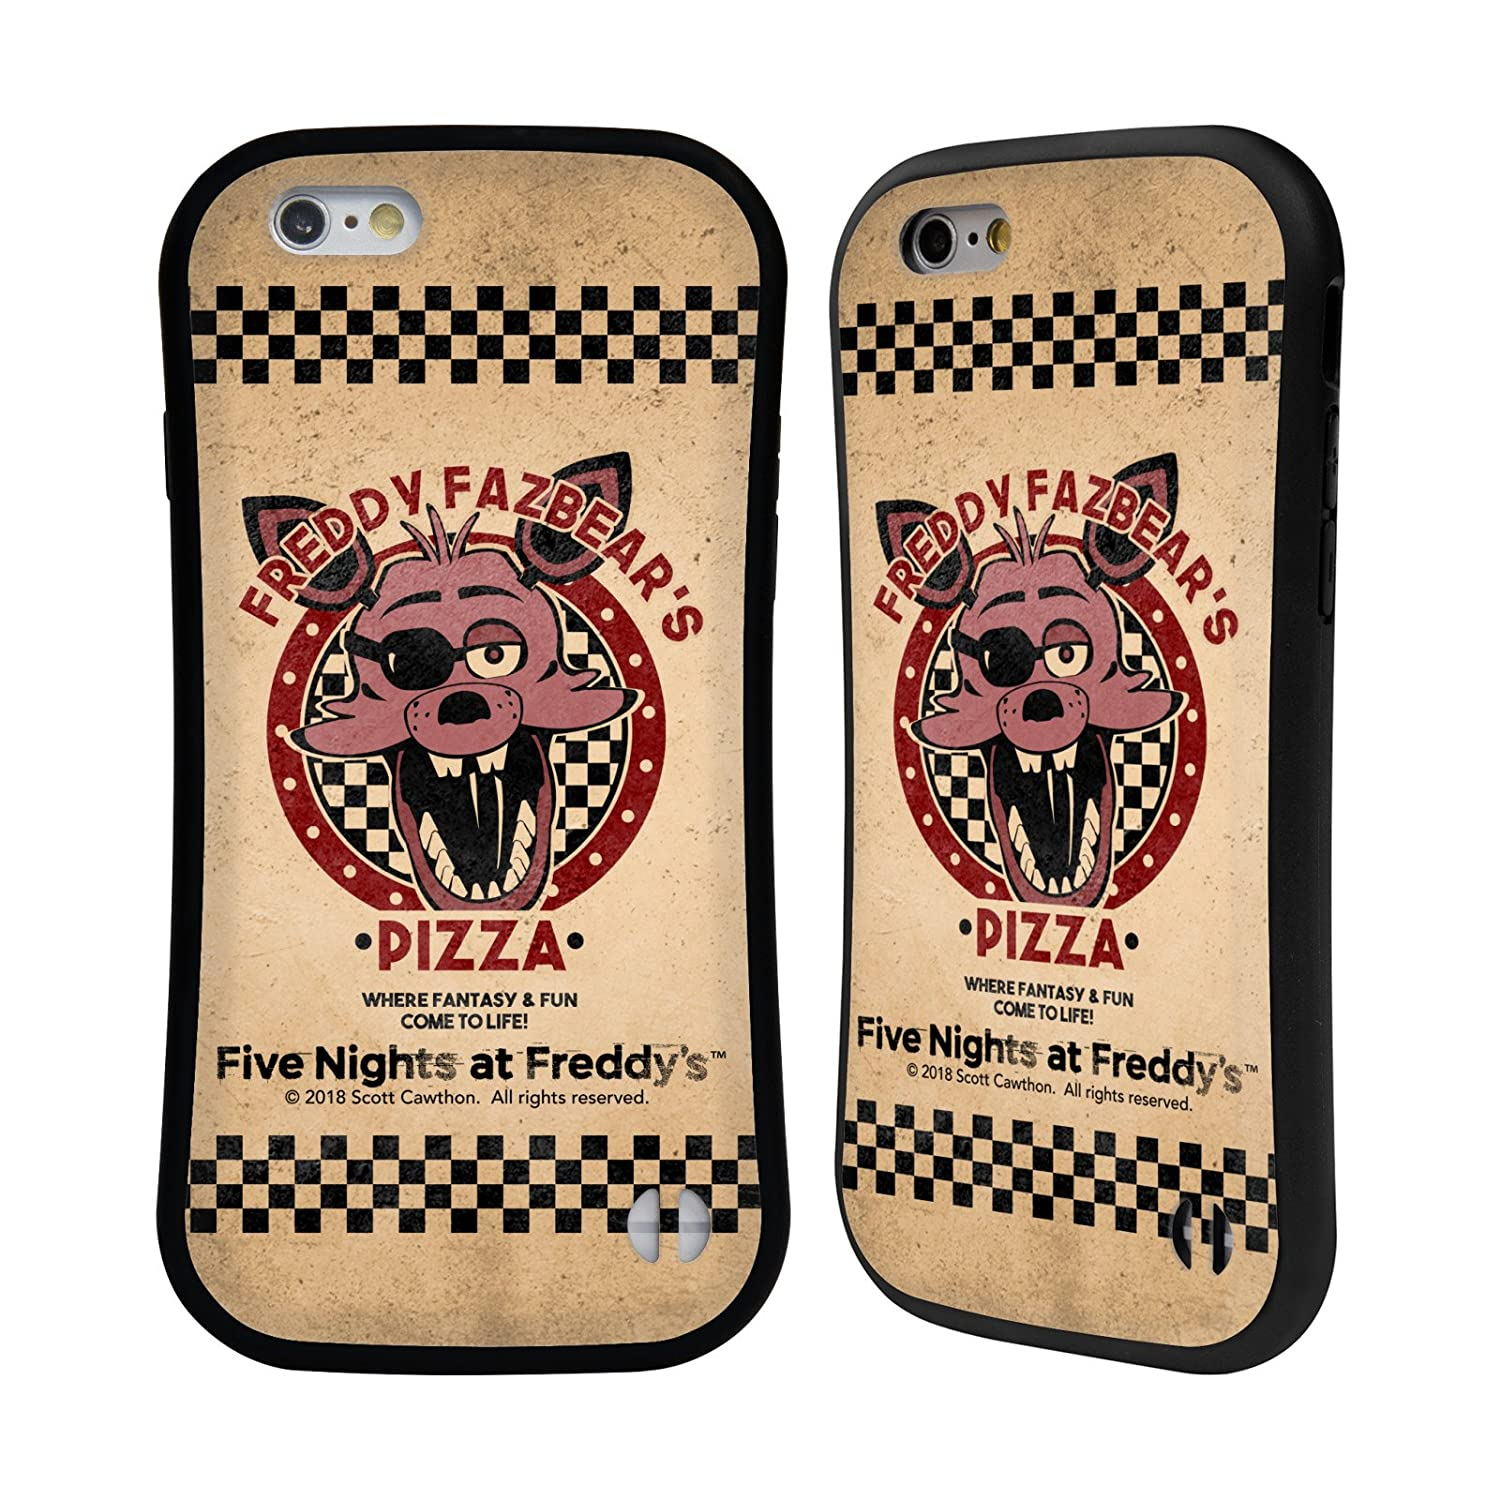 Head Case Designs Ufficiale Five Nights At Freddy's Freddy Freddy Fazbear's Pizza Case Ibrida per iPhone 7 Plus/iPhone 8 Plus HHYBK-IPH7P-FNAFG6PS-TFR